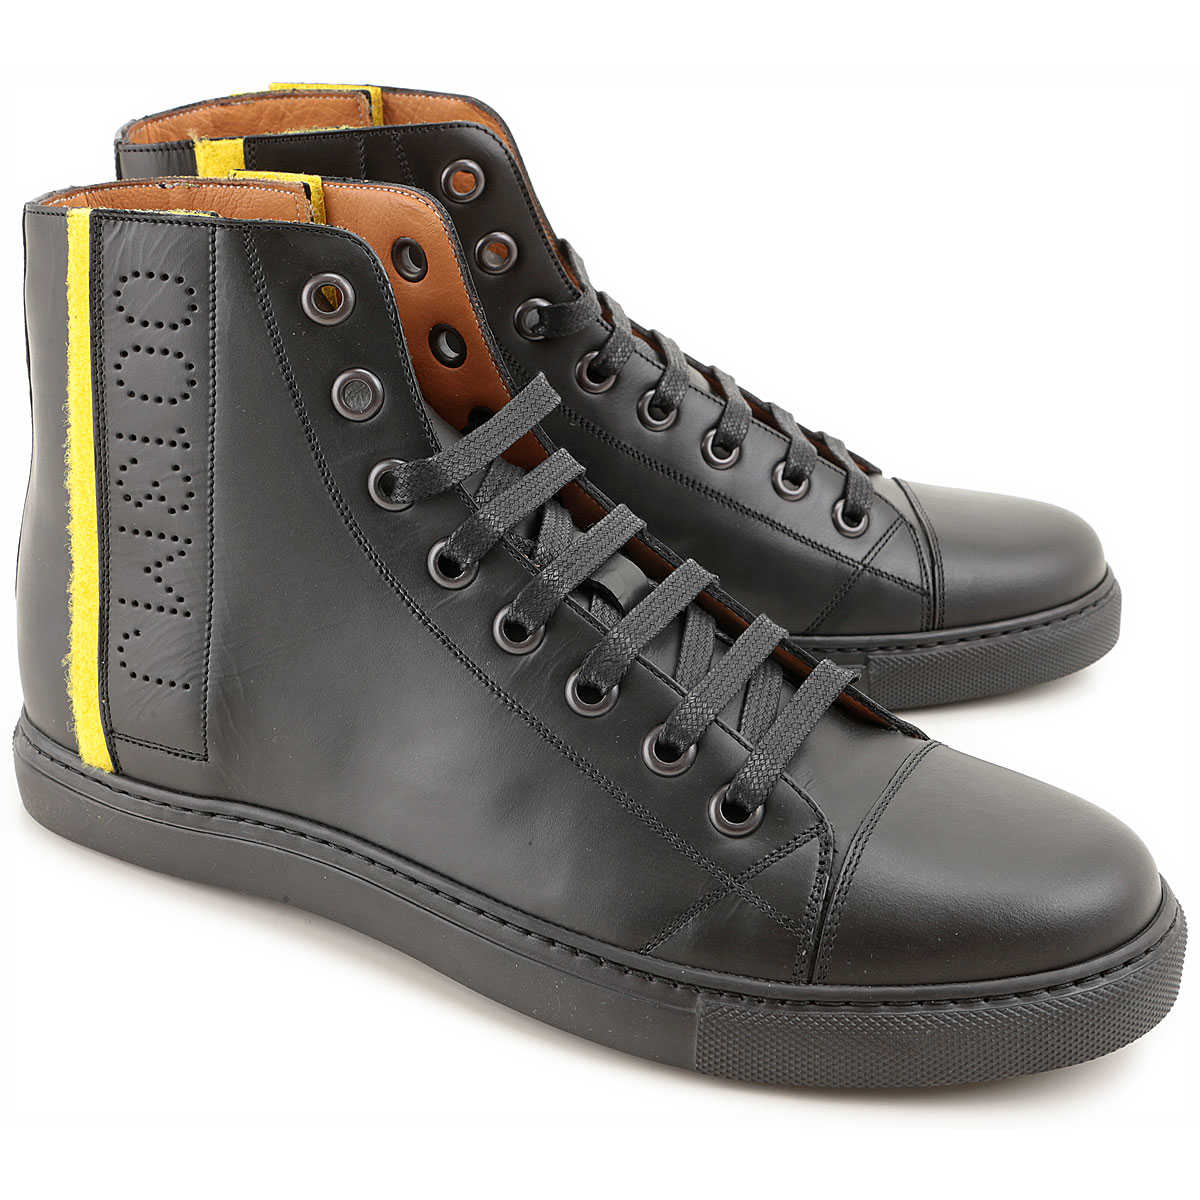 Marc Jacobs Sneakers for Men On Sale